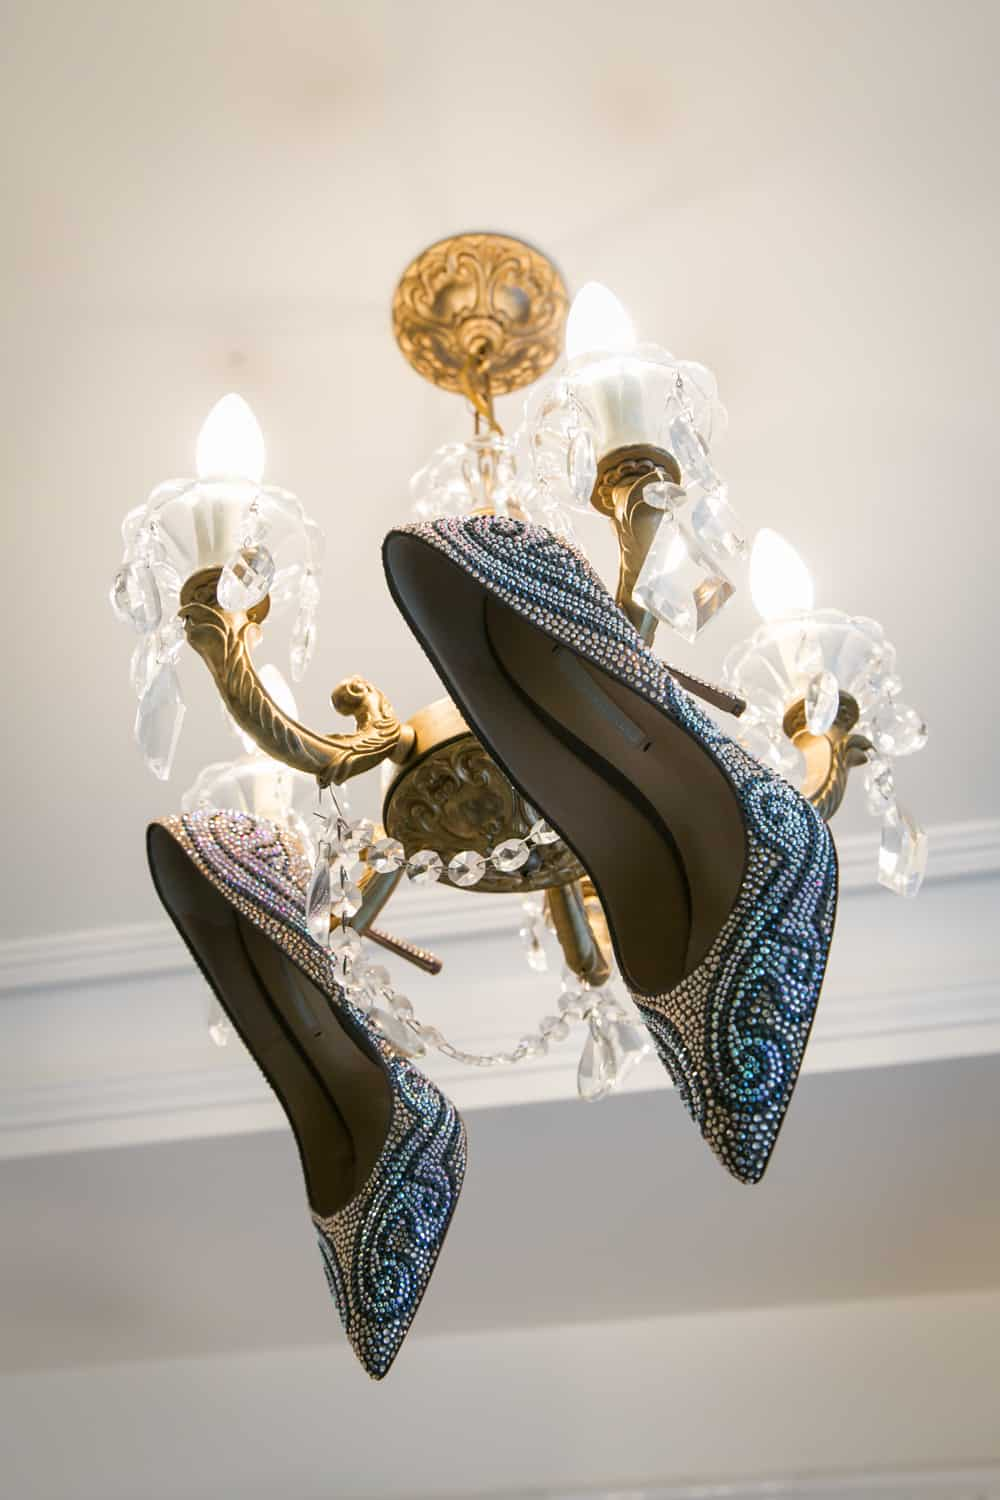 Sequined high heels hanging off a chandelier